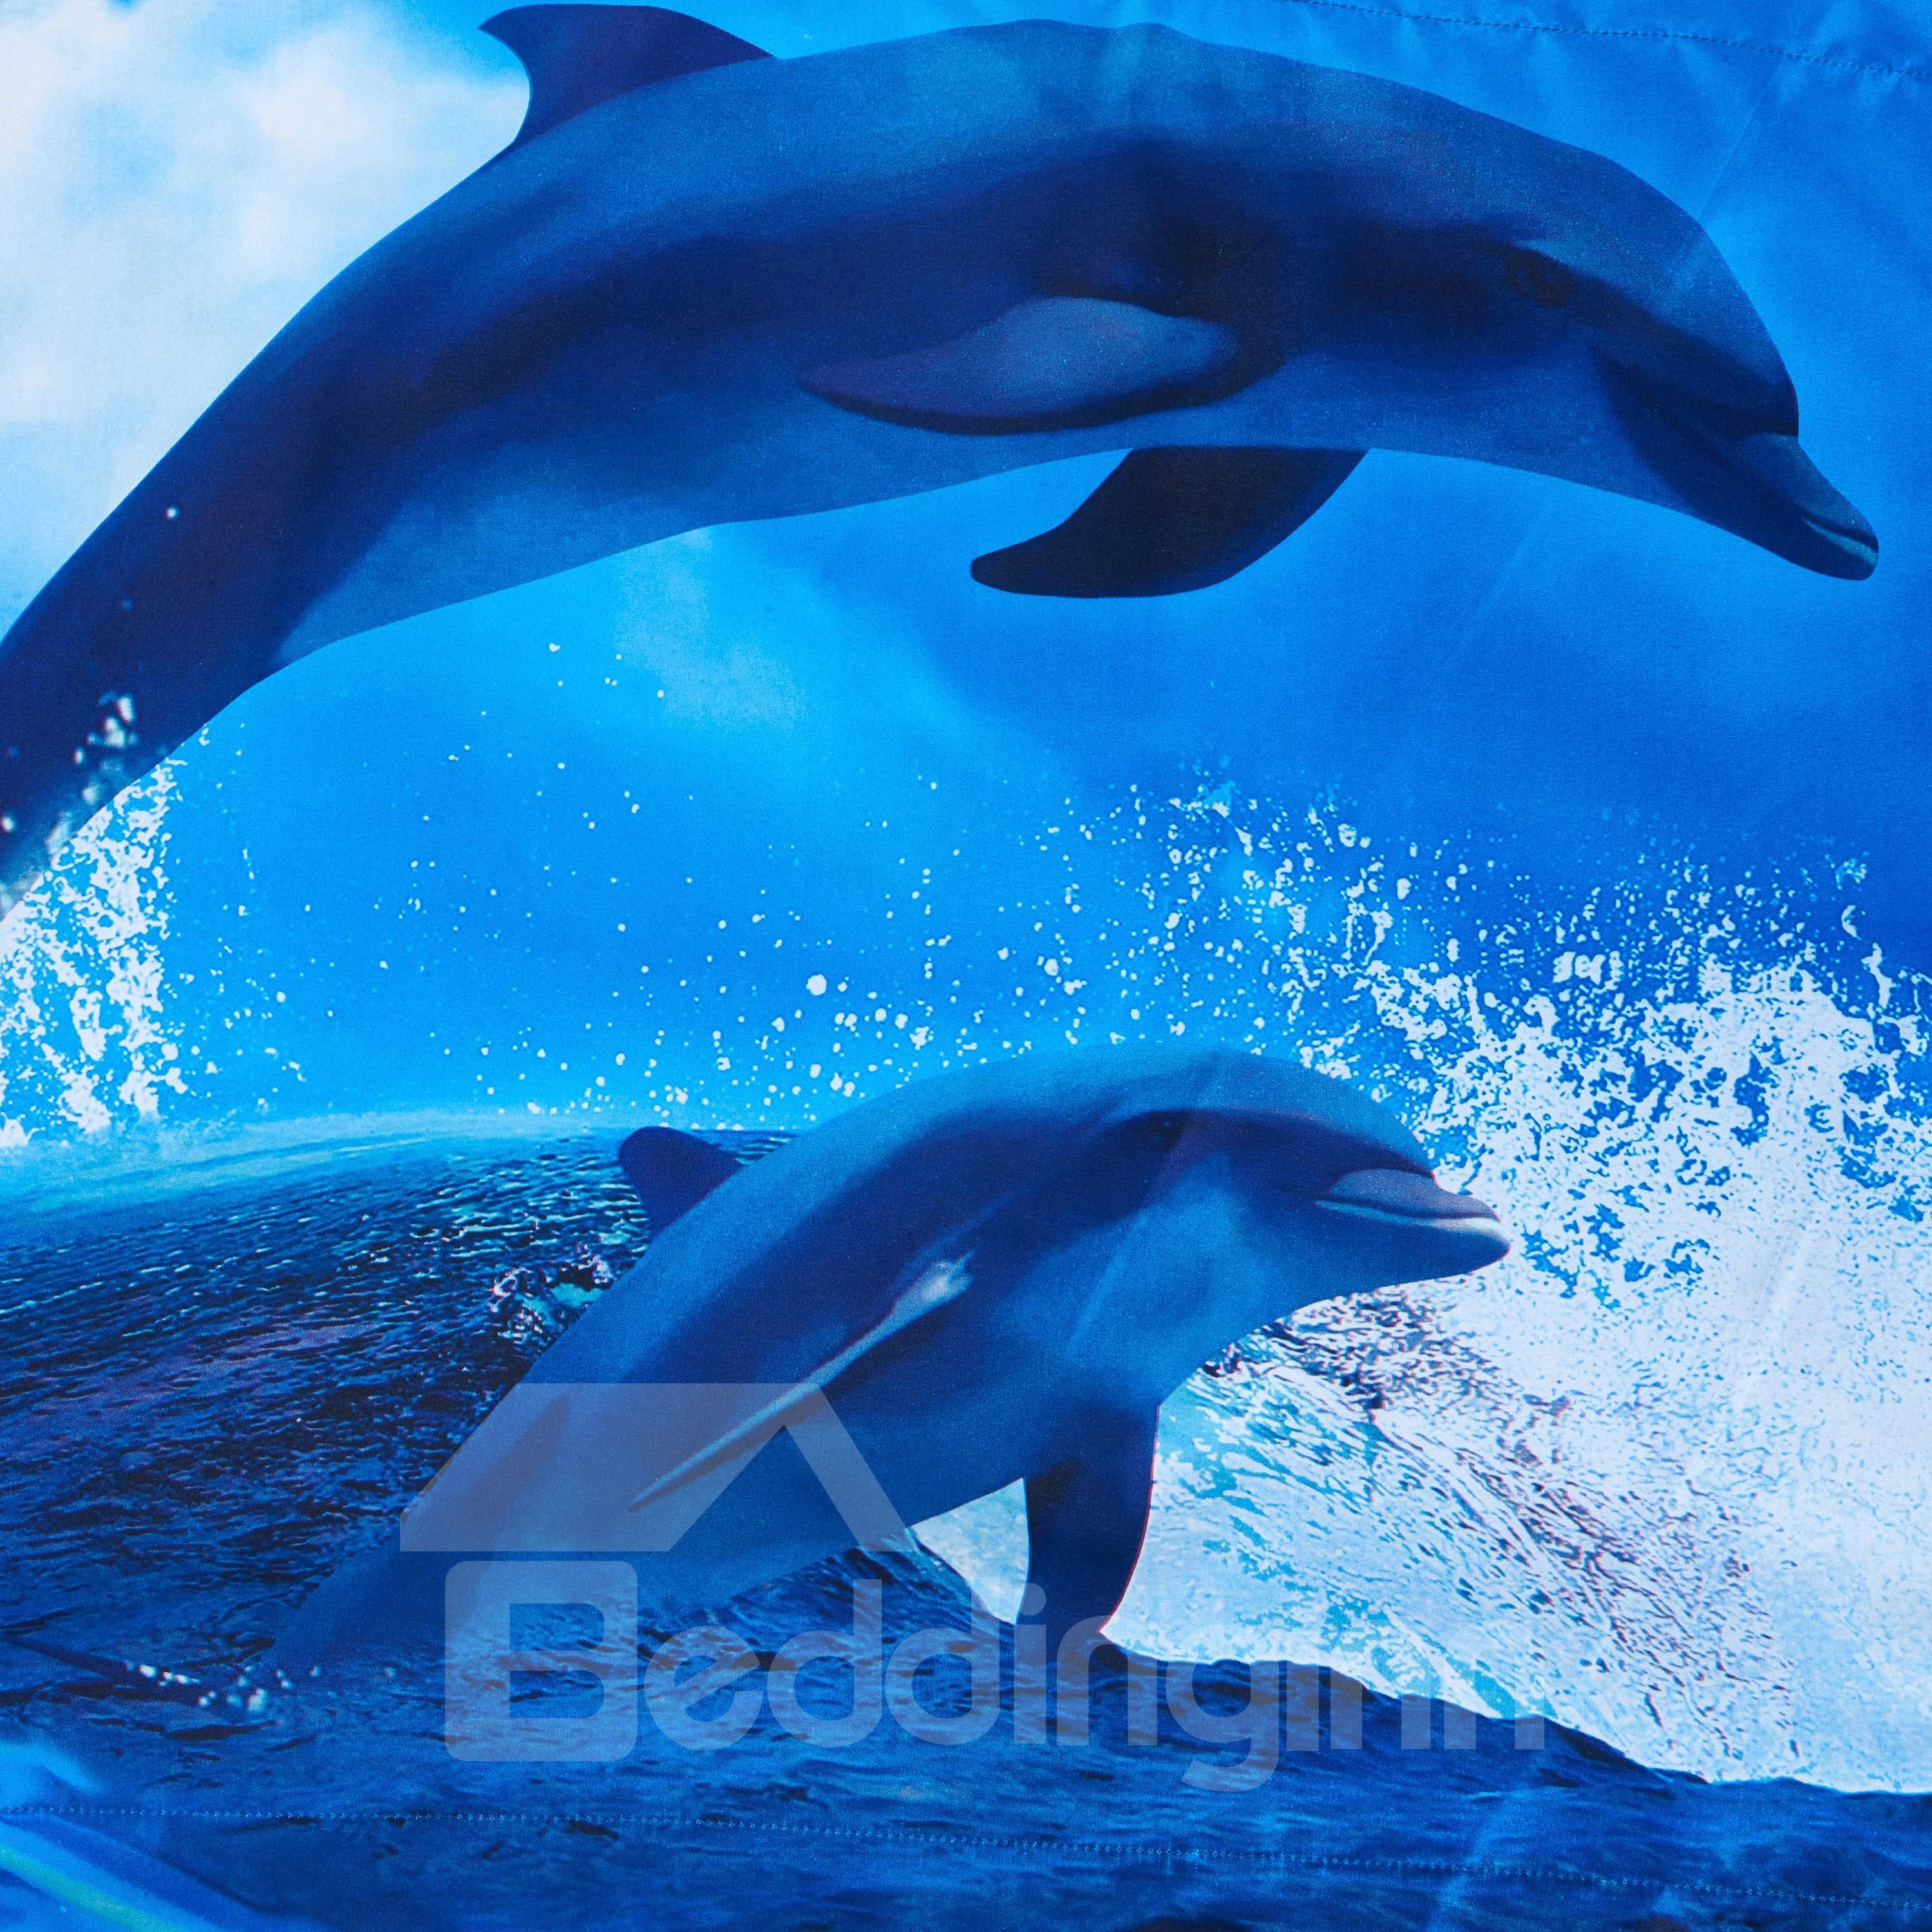 Dolphins Jumping out of Blue Water Print Polyester 3D Bedding Sets